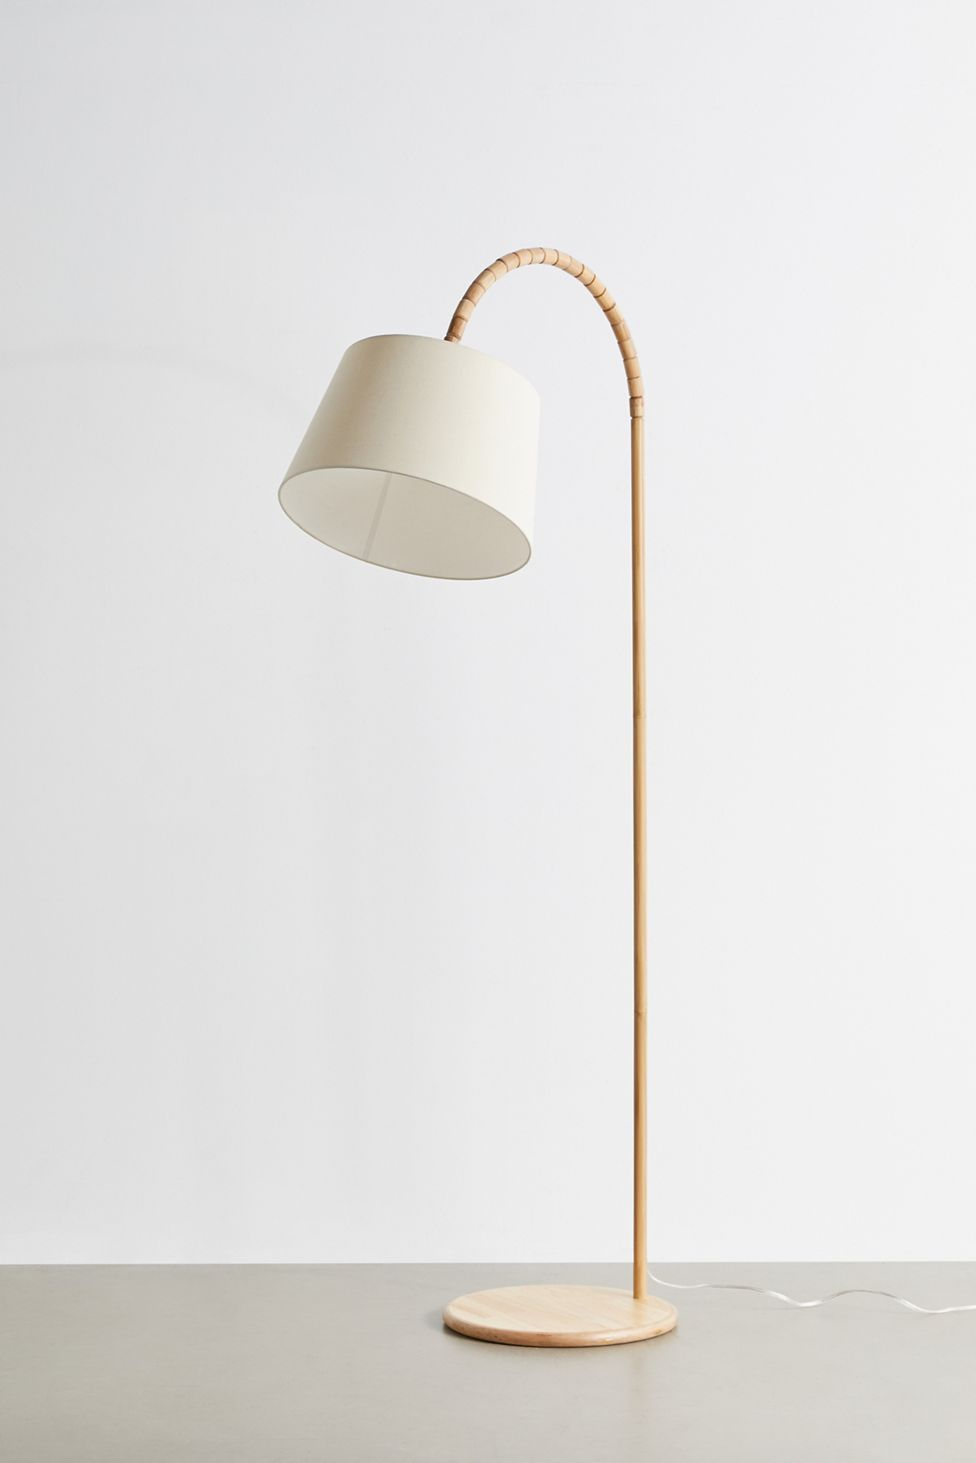 Marcella Arc Floor Lamp Urban Outfitters In 2020 Arc Floor Lamps Rattan Floor Lamp Lamp